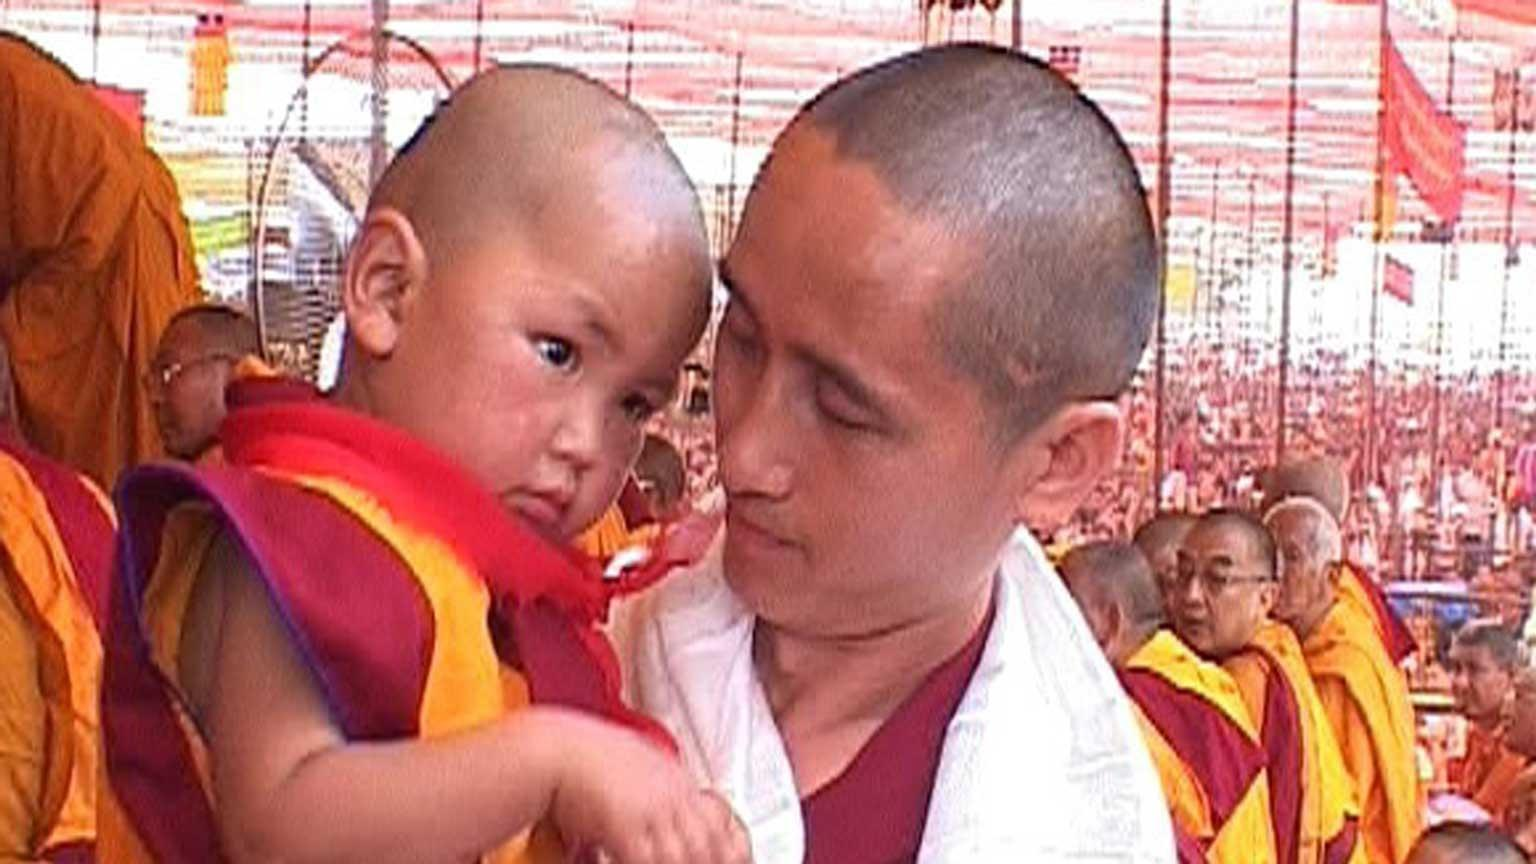 unmistaken child the reincarnation of soul The first part of that picture is about the search for the reincarnation of his holiness and unmistaken child is primarily about the search for the rebirth of one.